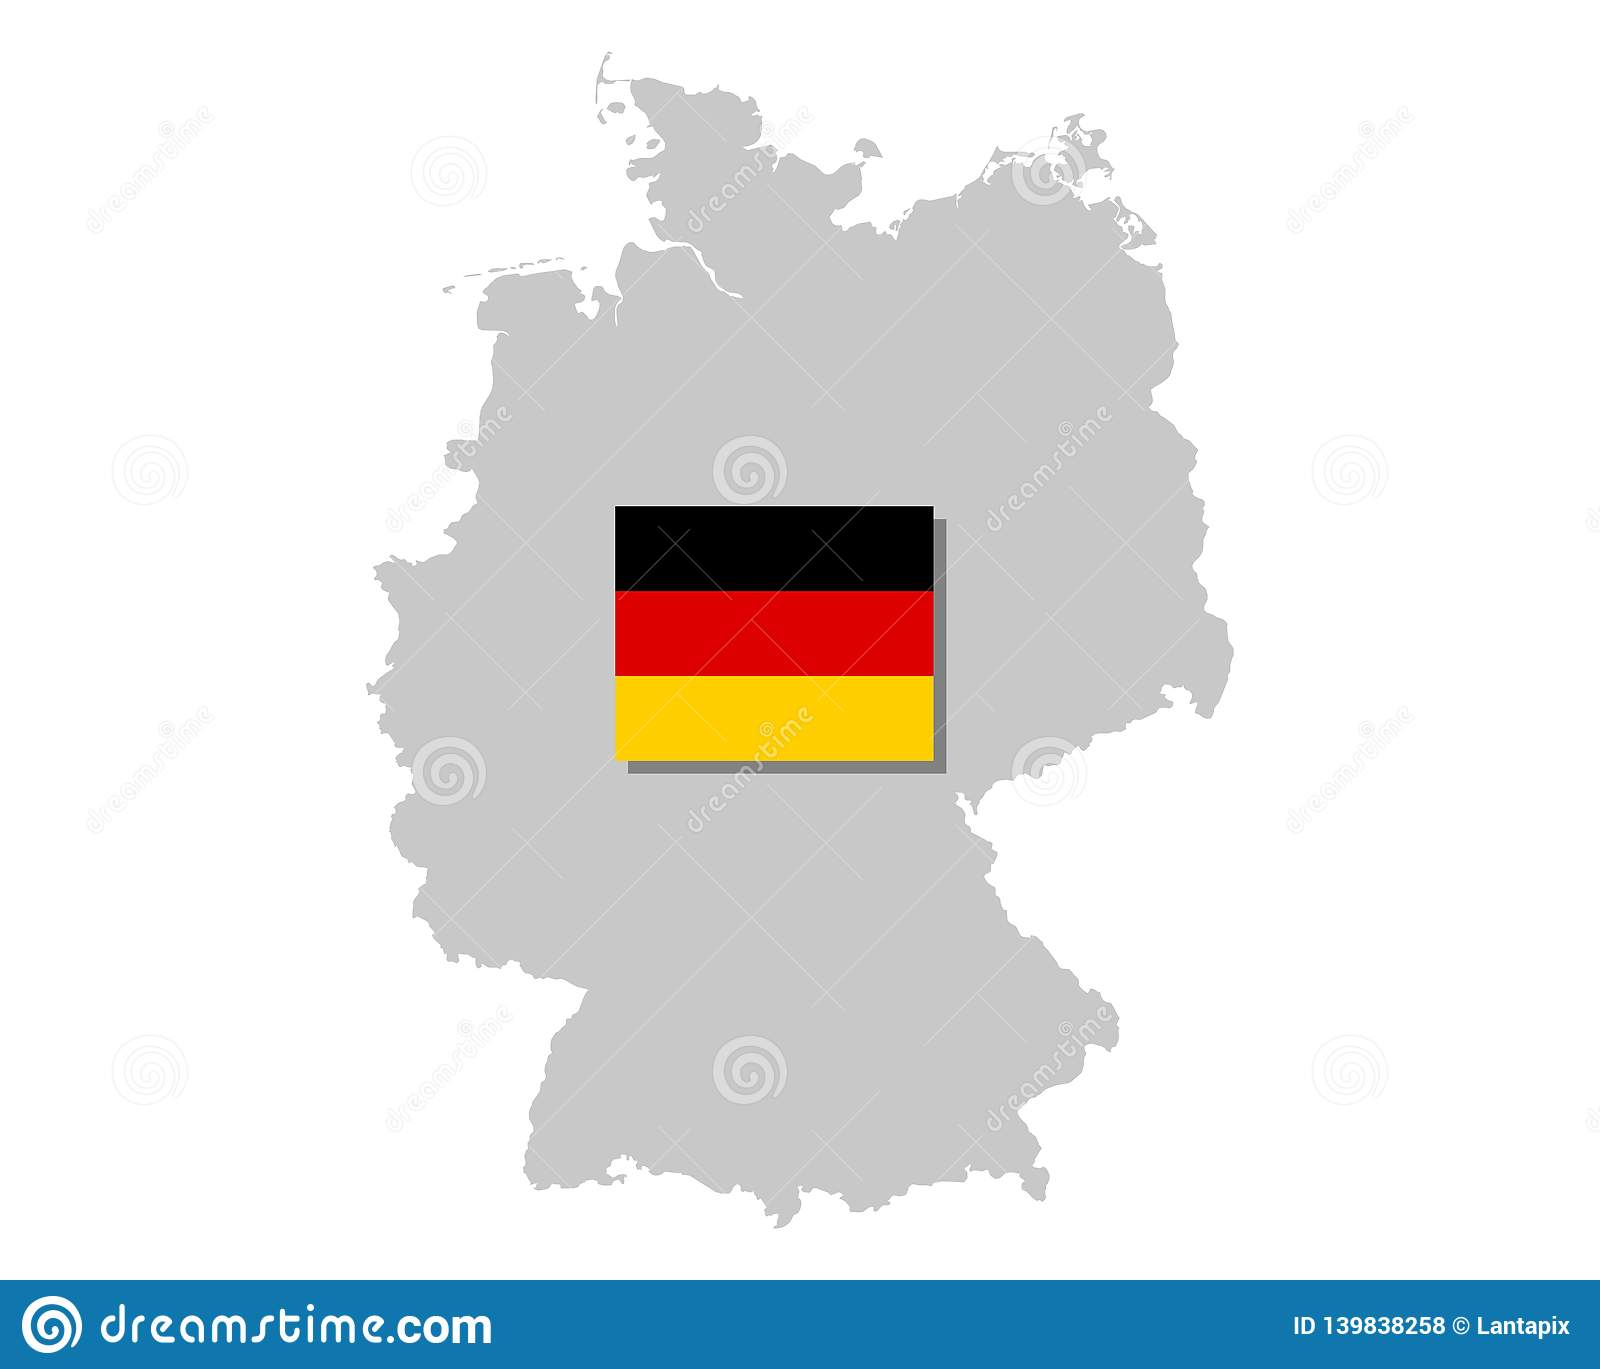 German flag and map stock vector. Illustration of black ... on german flags of the world, germany map, state flags map, rhine river map, england map, german stereotypes, german world war 1 map, german state flags,